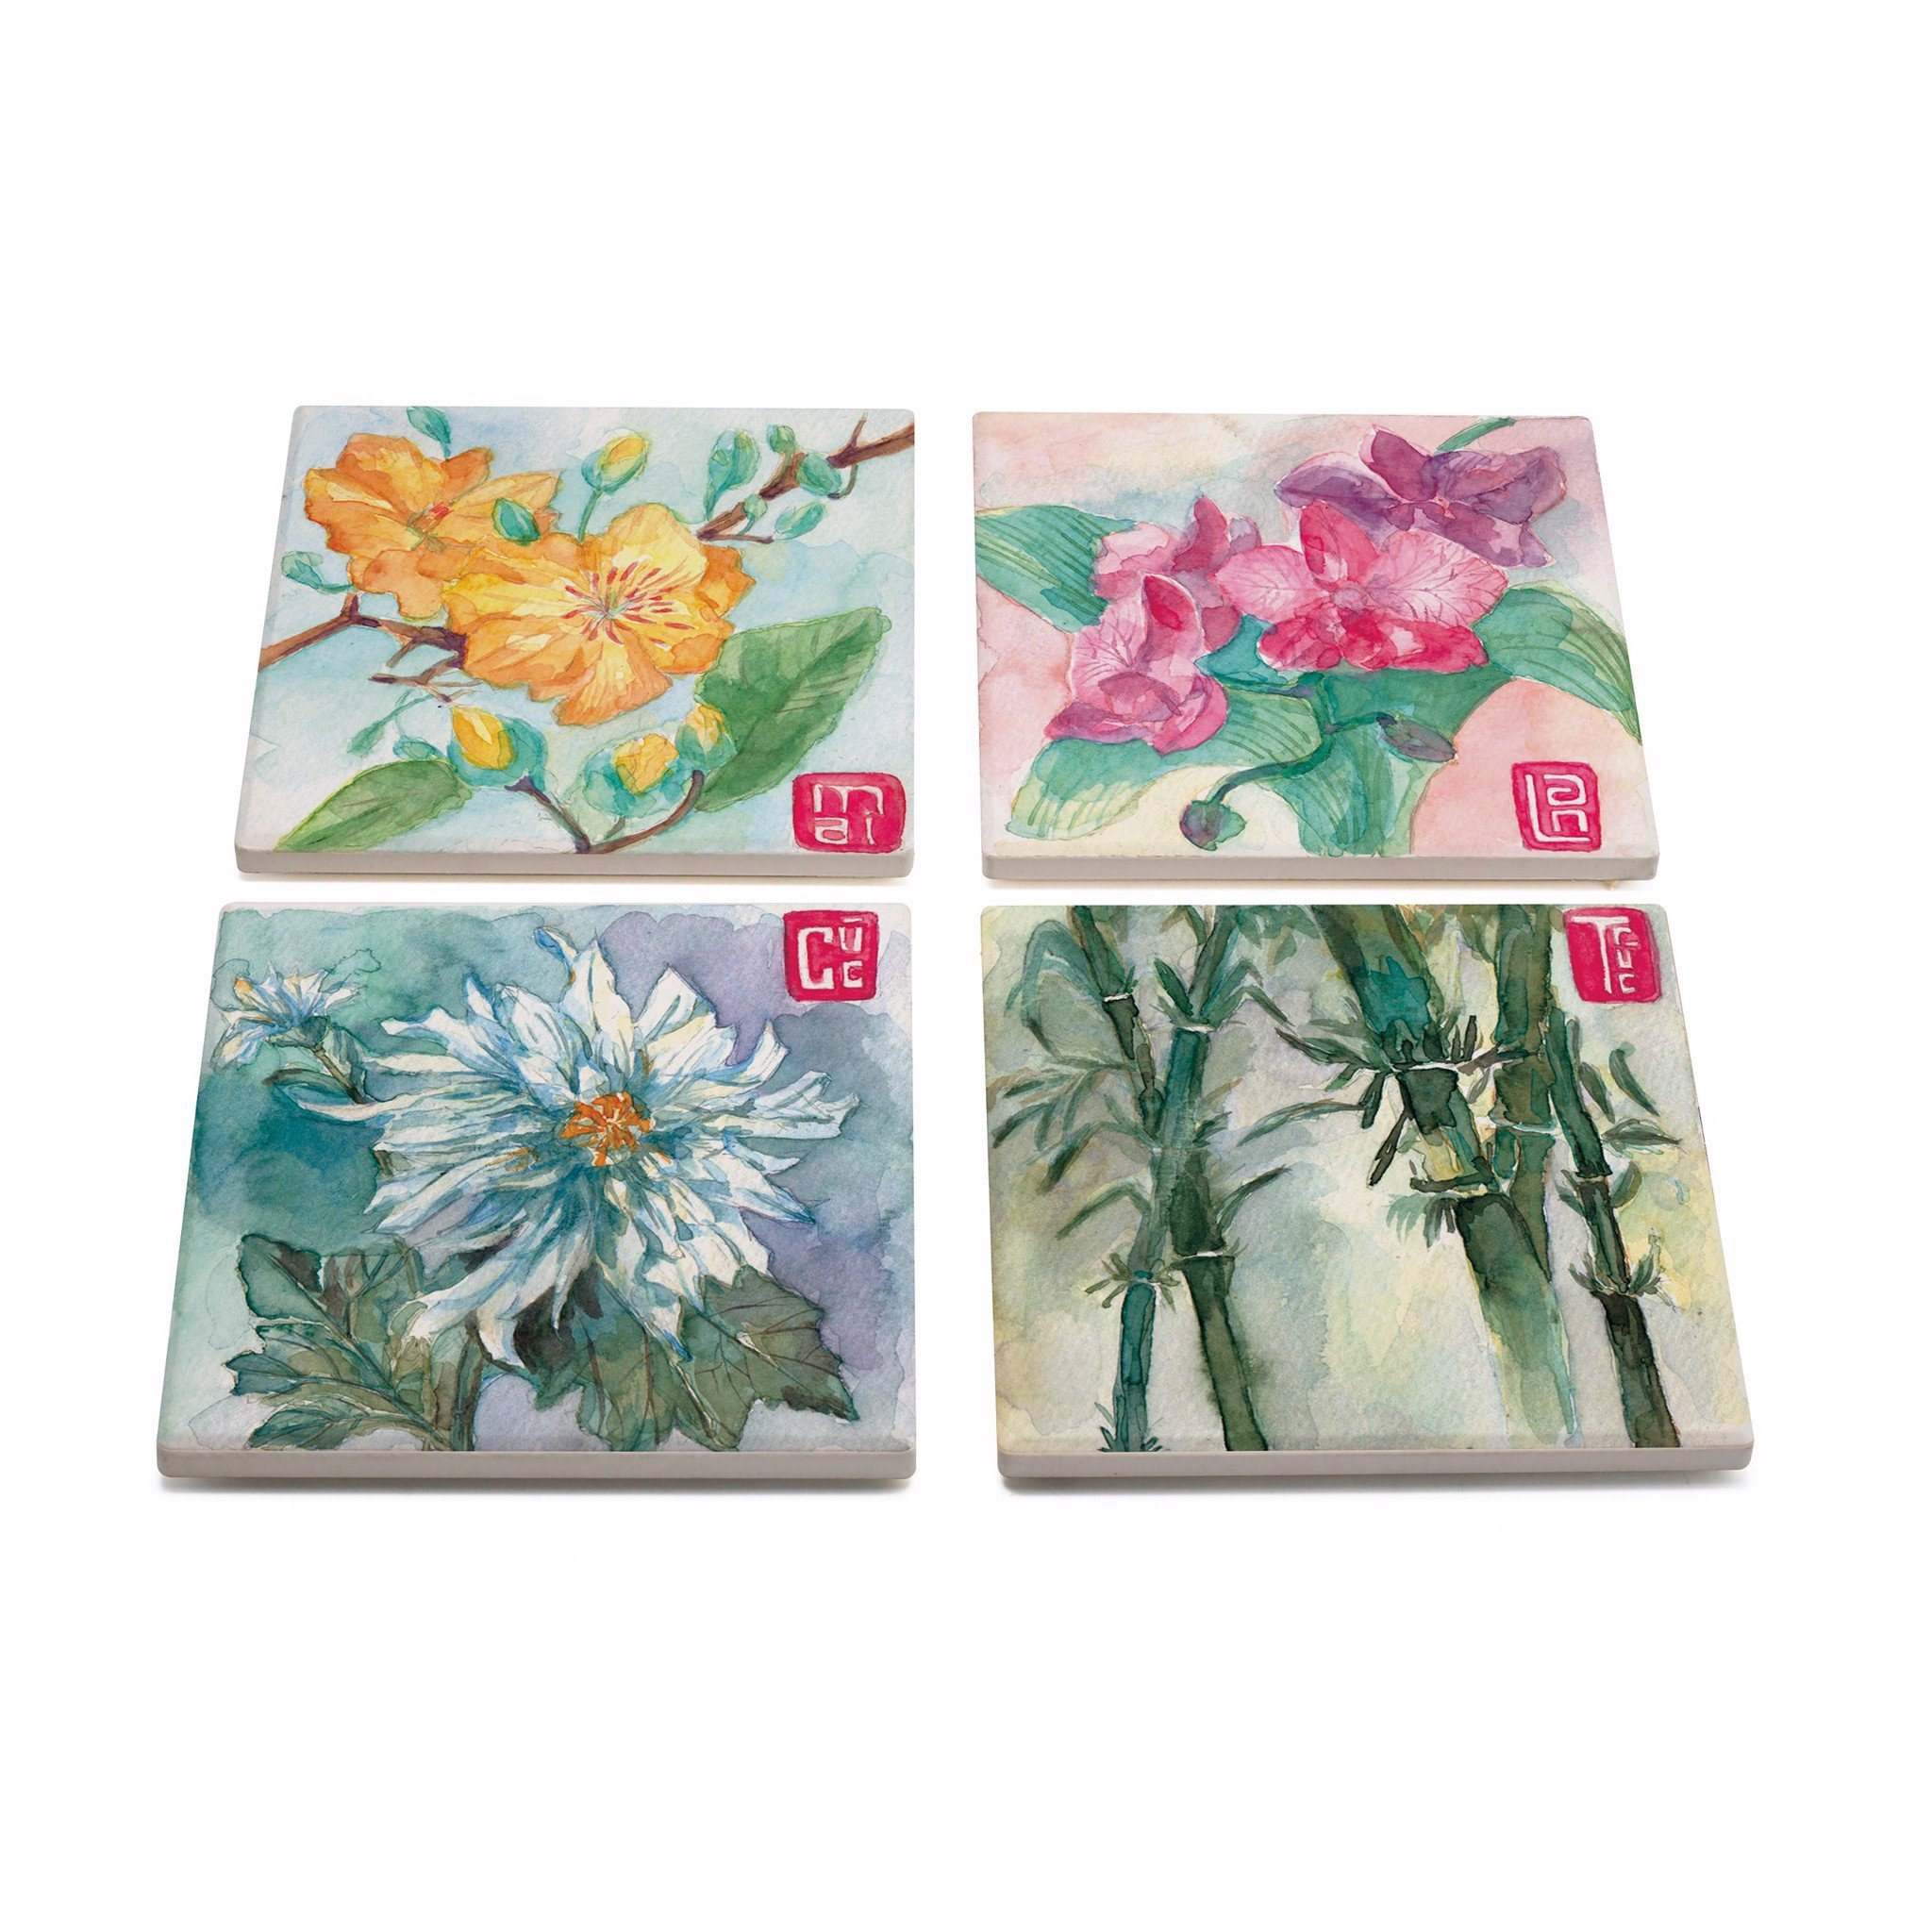 Lót Ly Gốm Vuông Flower Of Vietnam - Flowers of Vietnam Square Coaster